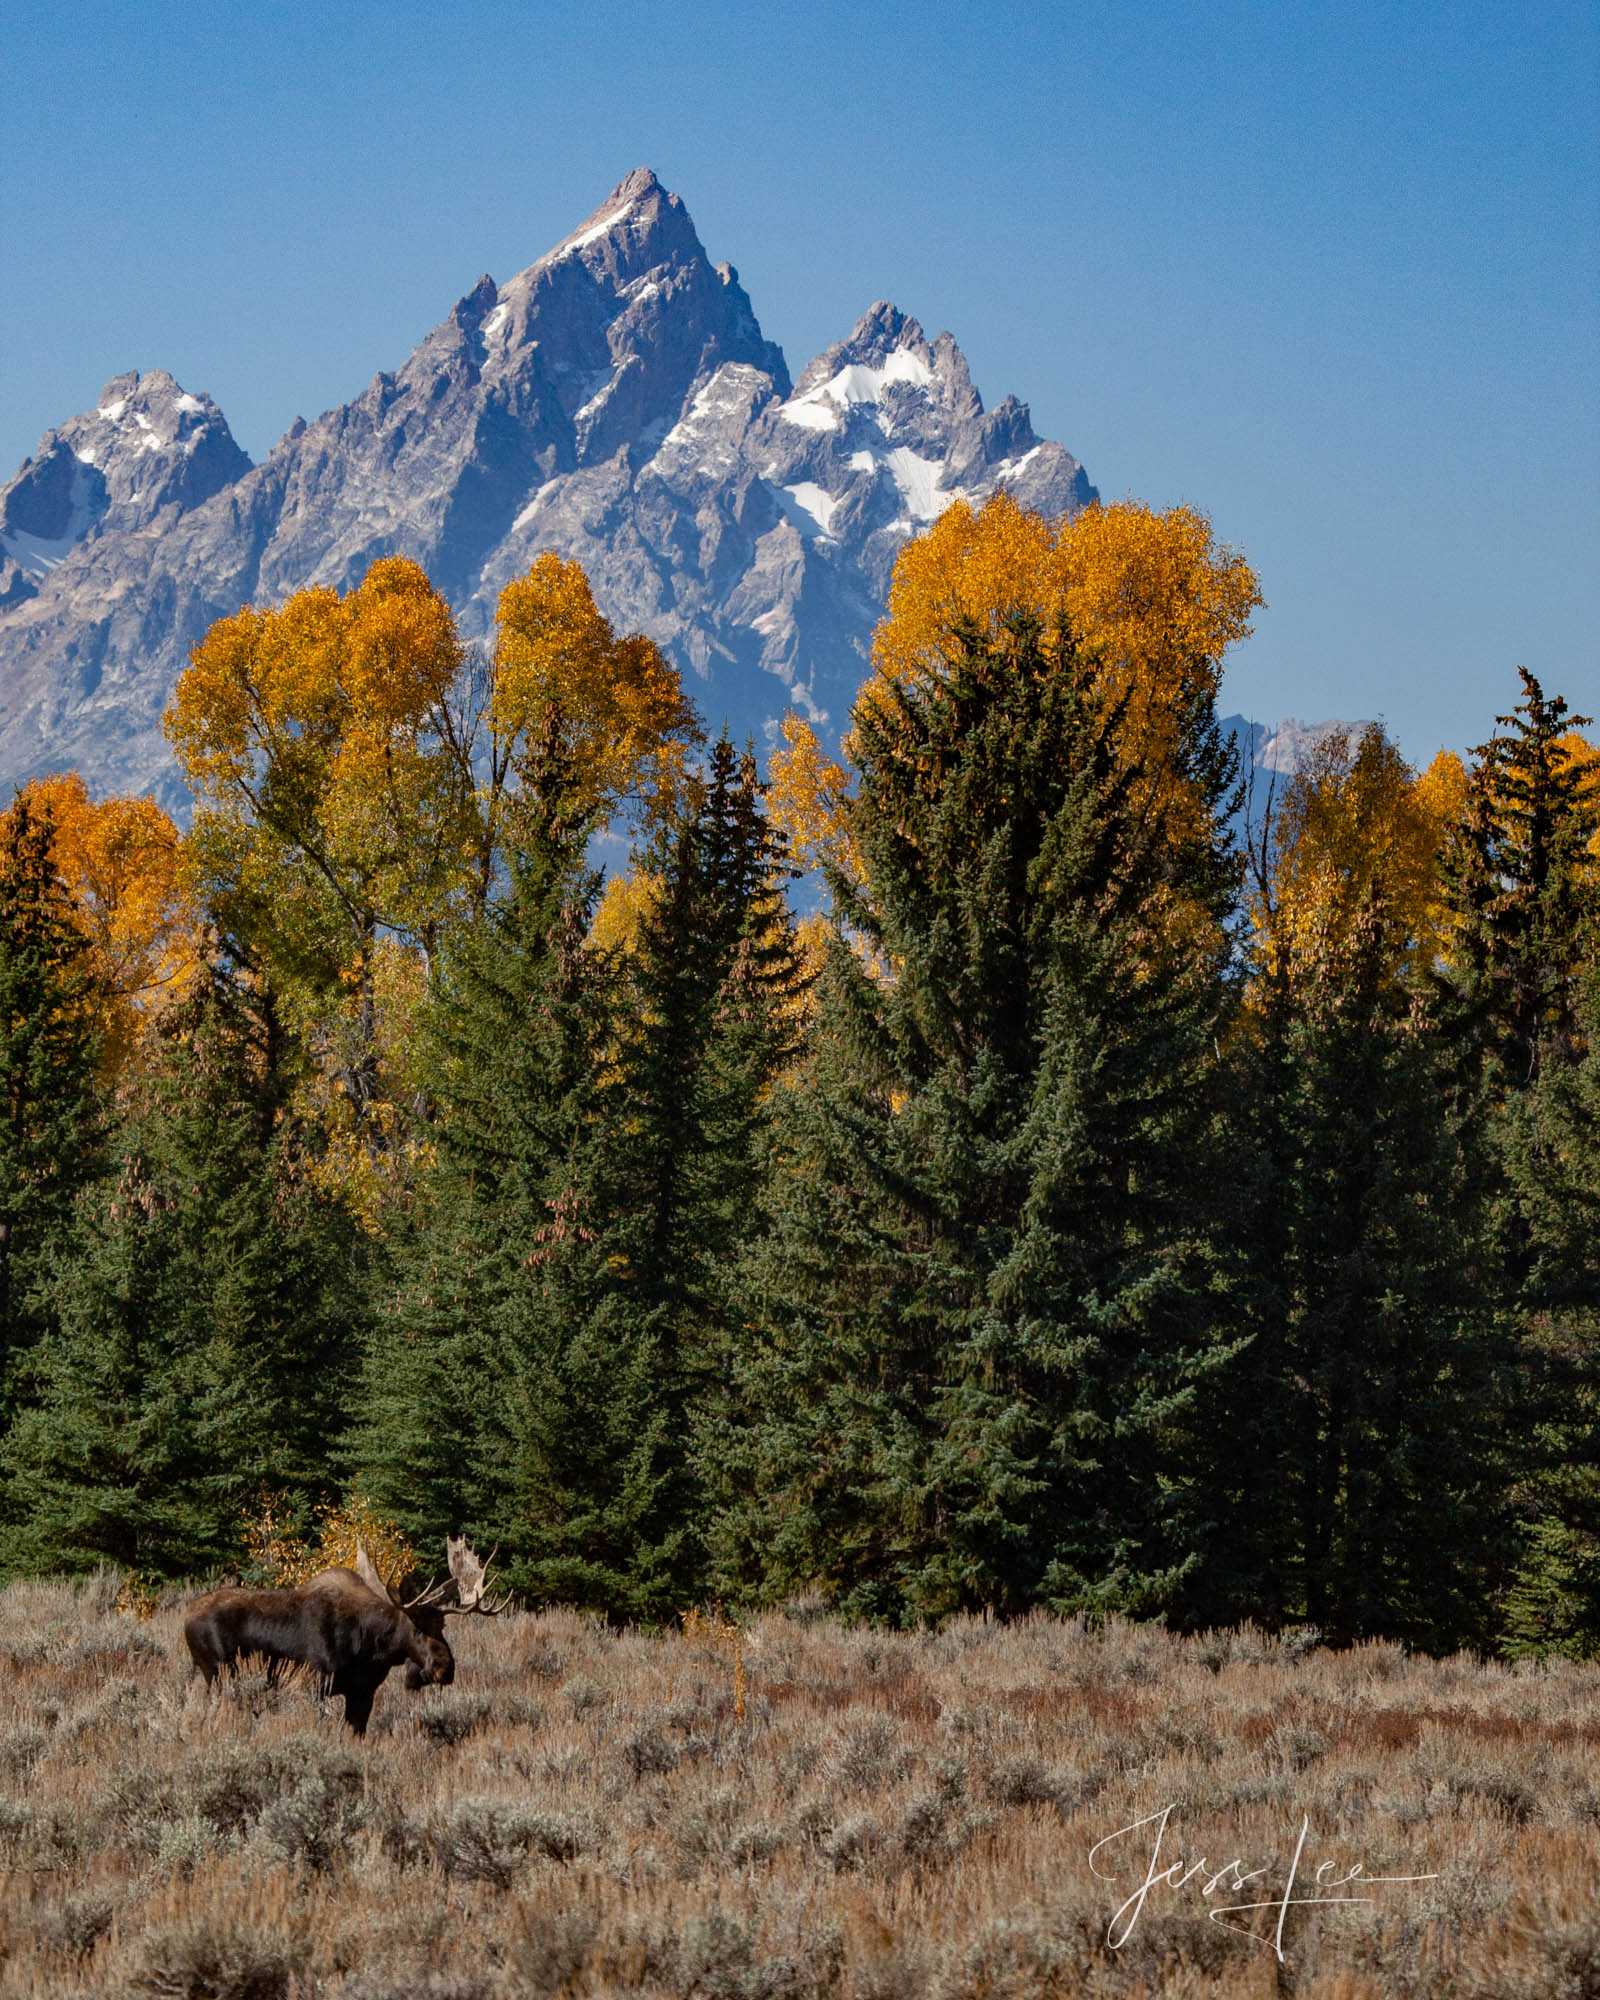 Teton Bull Moose at the foot of the Tetons. A limited edition of 800 prints. These Moose fine art wildlife photographs are offered...